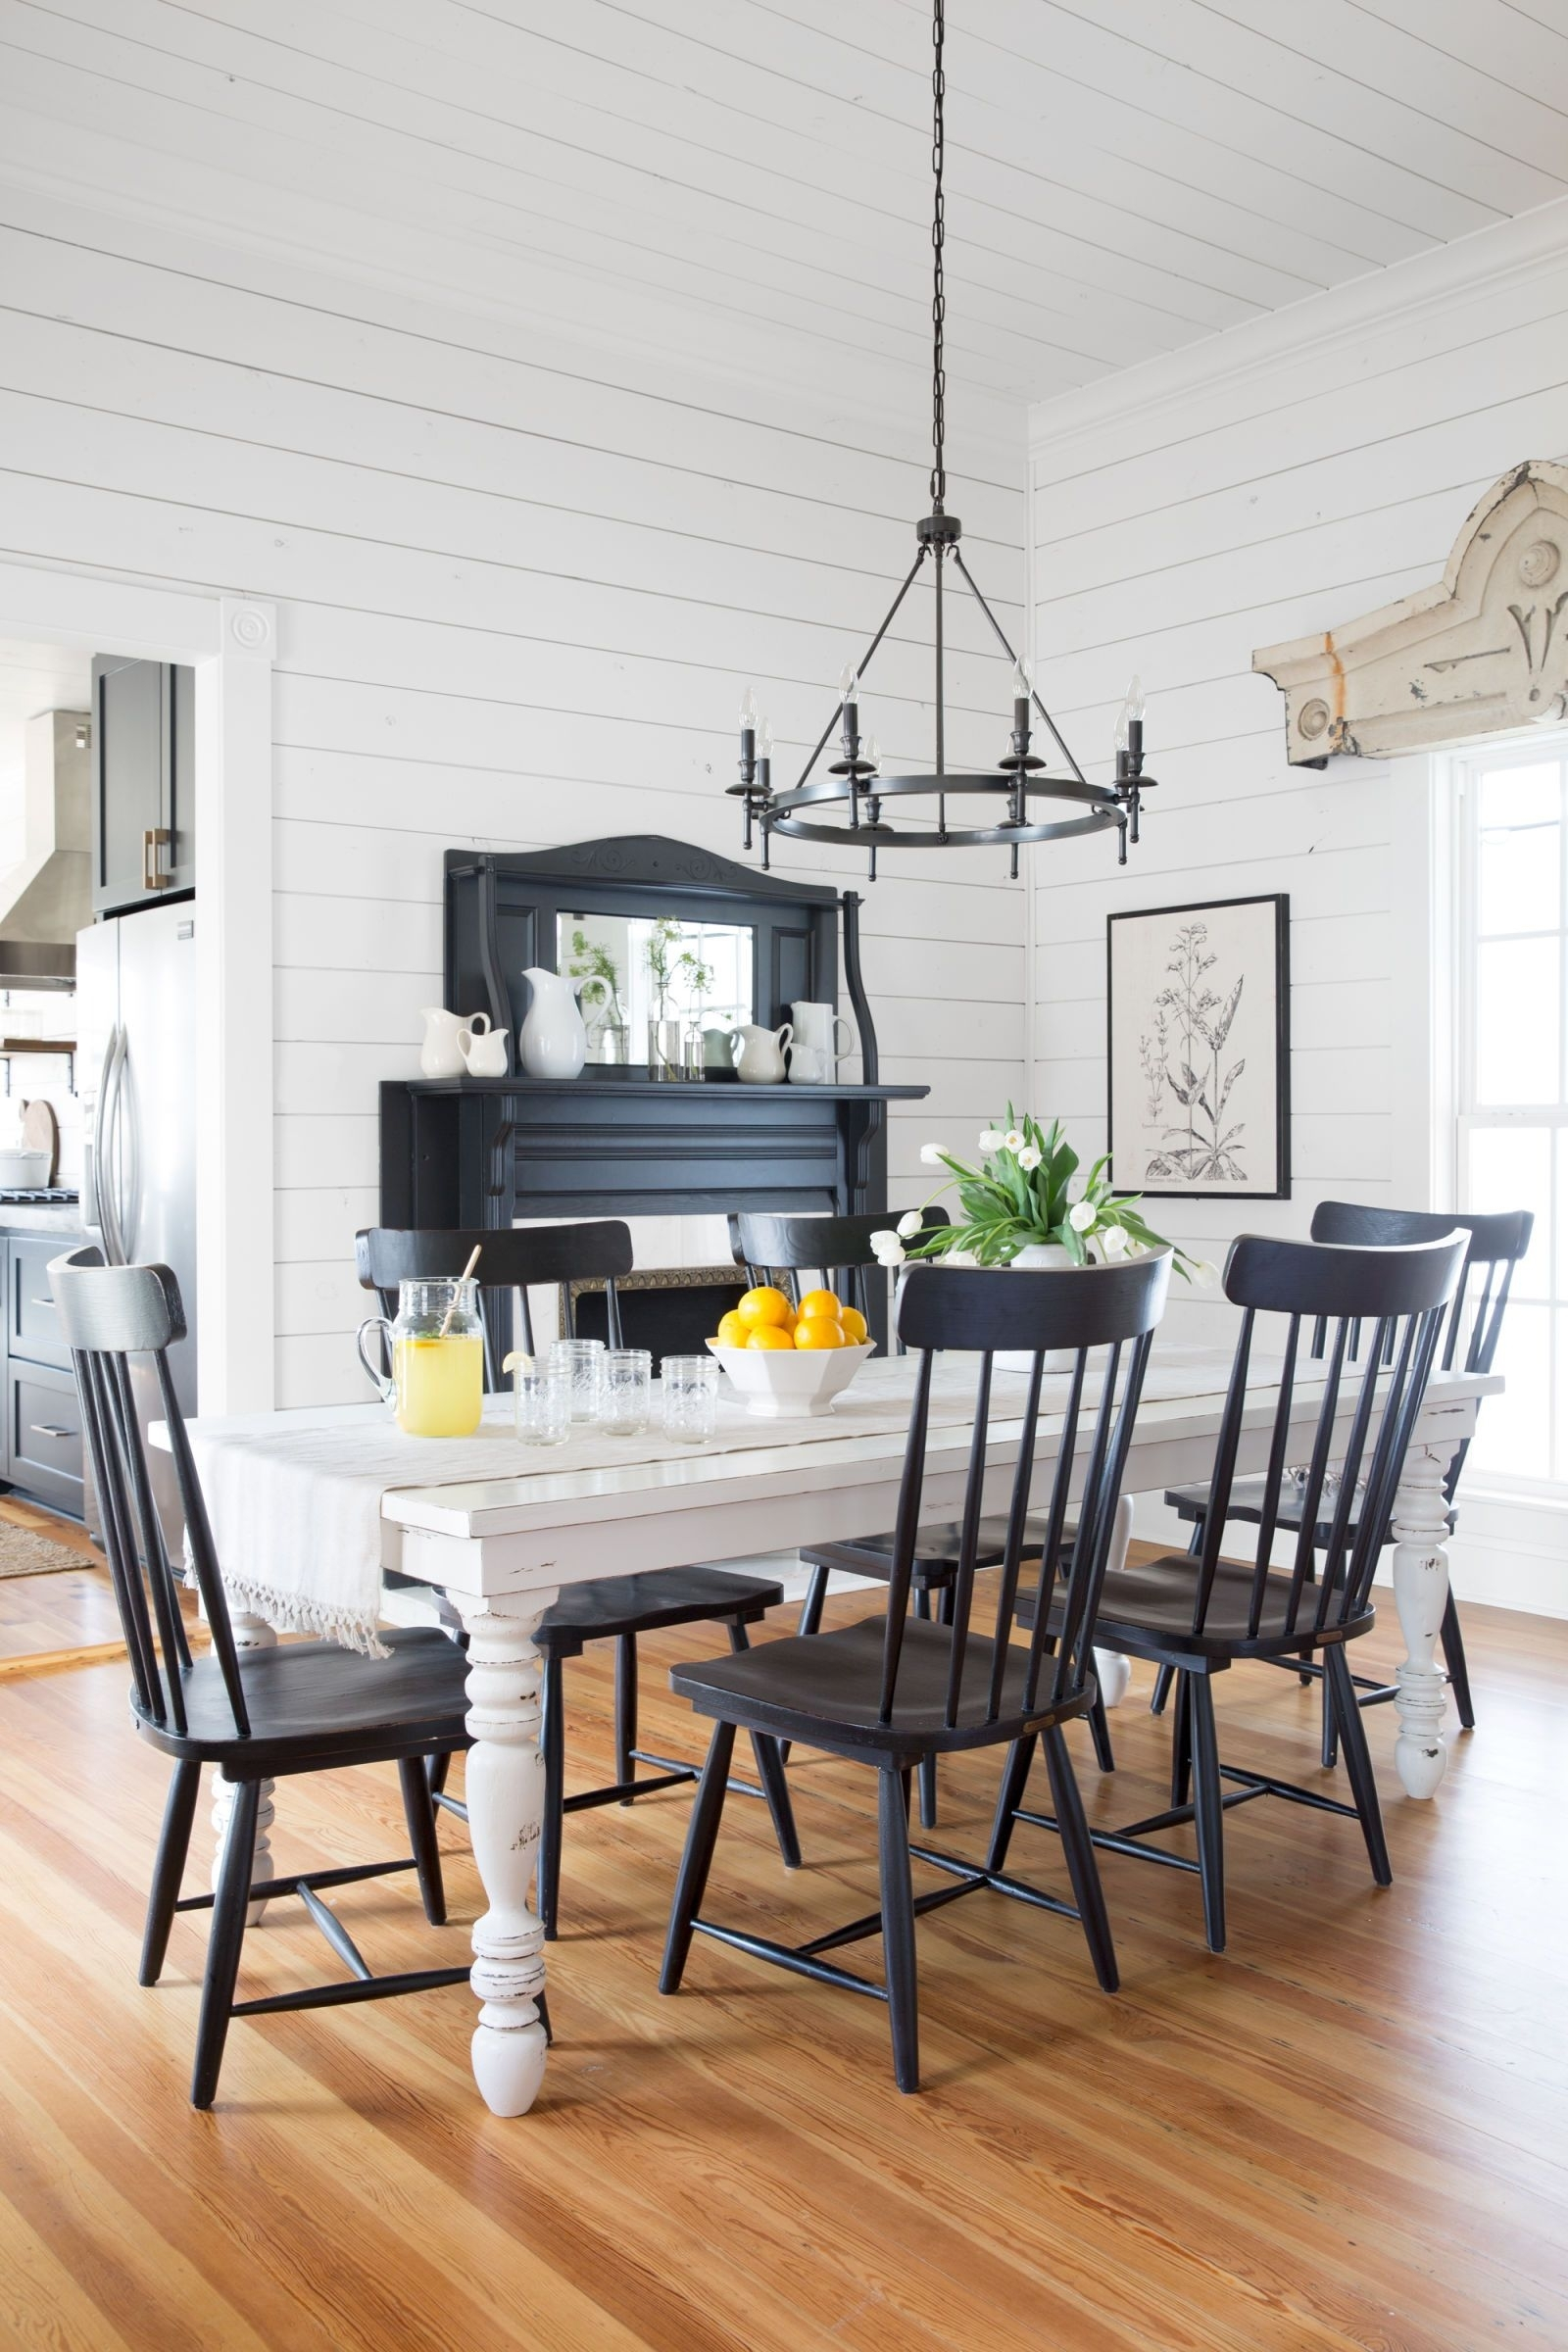 Take A Tour Of Chip And Joanna Gaines' Magnolia House B&b | Country Intended For 2018 Magnolia Home Breakfast Round Black Dining Tables (Image 19 of 20)